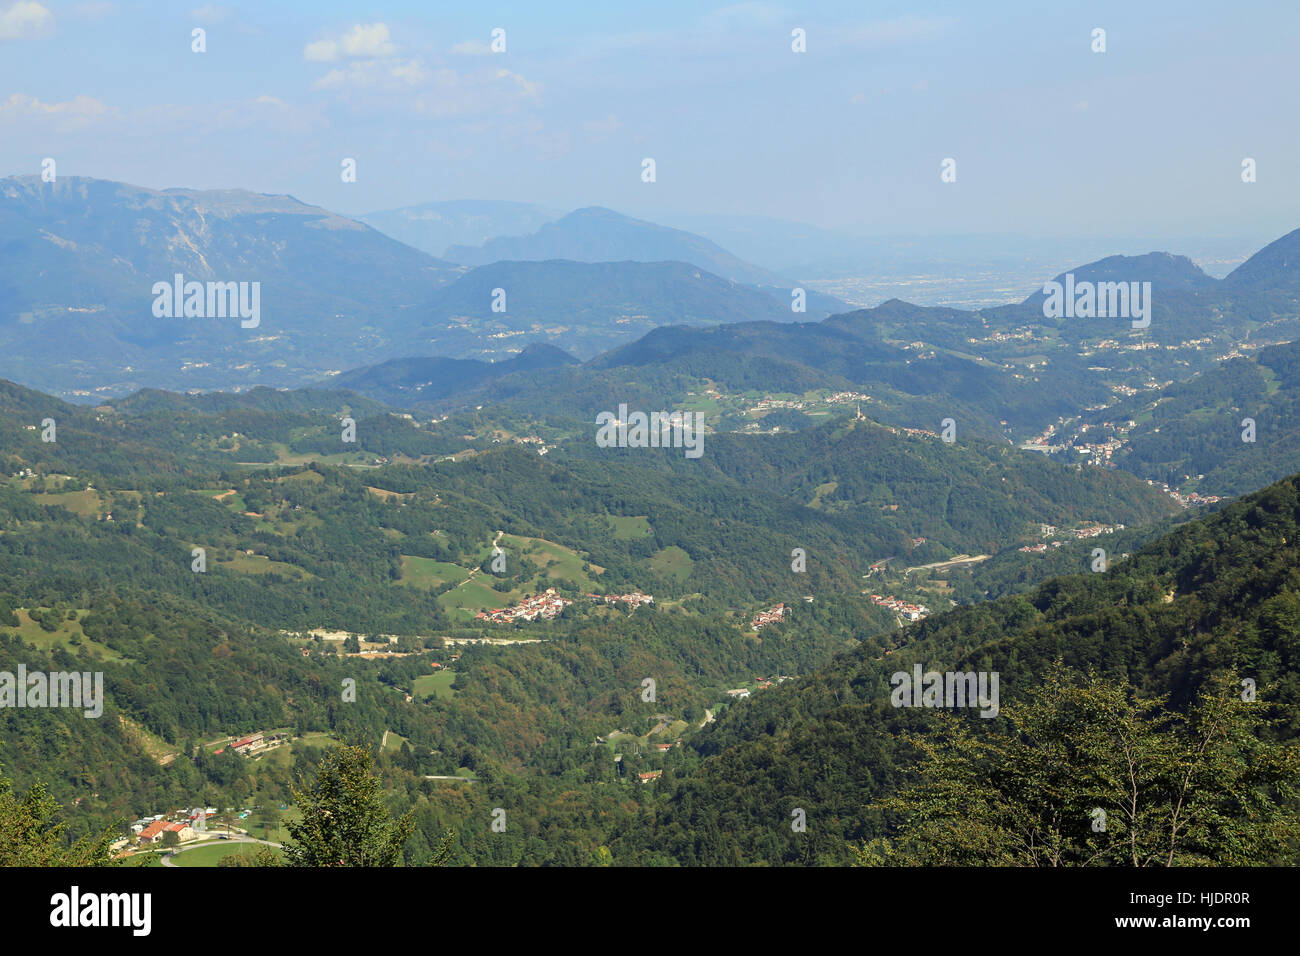 breathtaking views of the valley and the mountains to the city of Vicenza in northern Italy - Stock Image